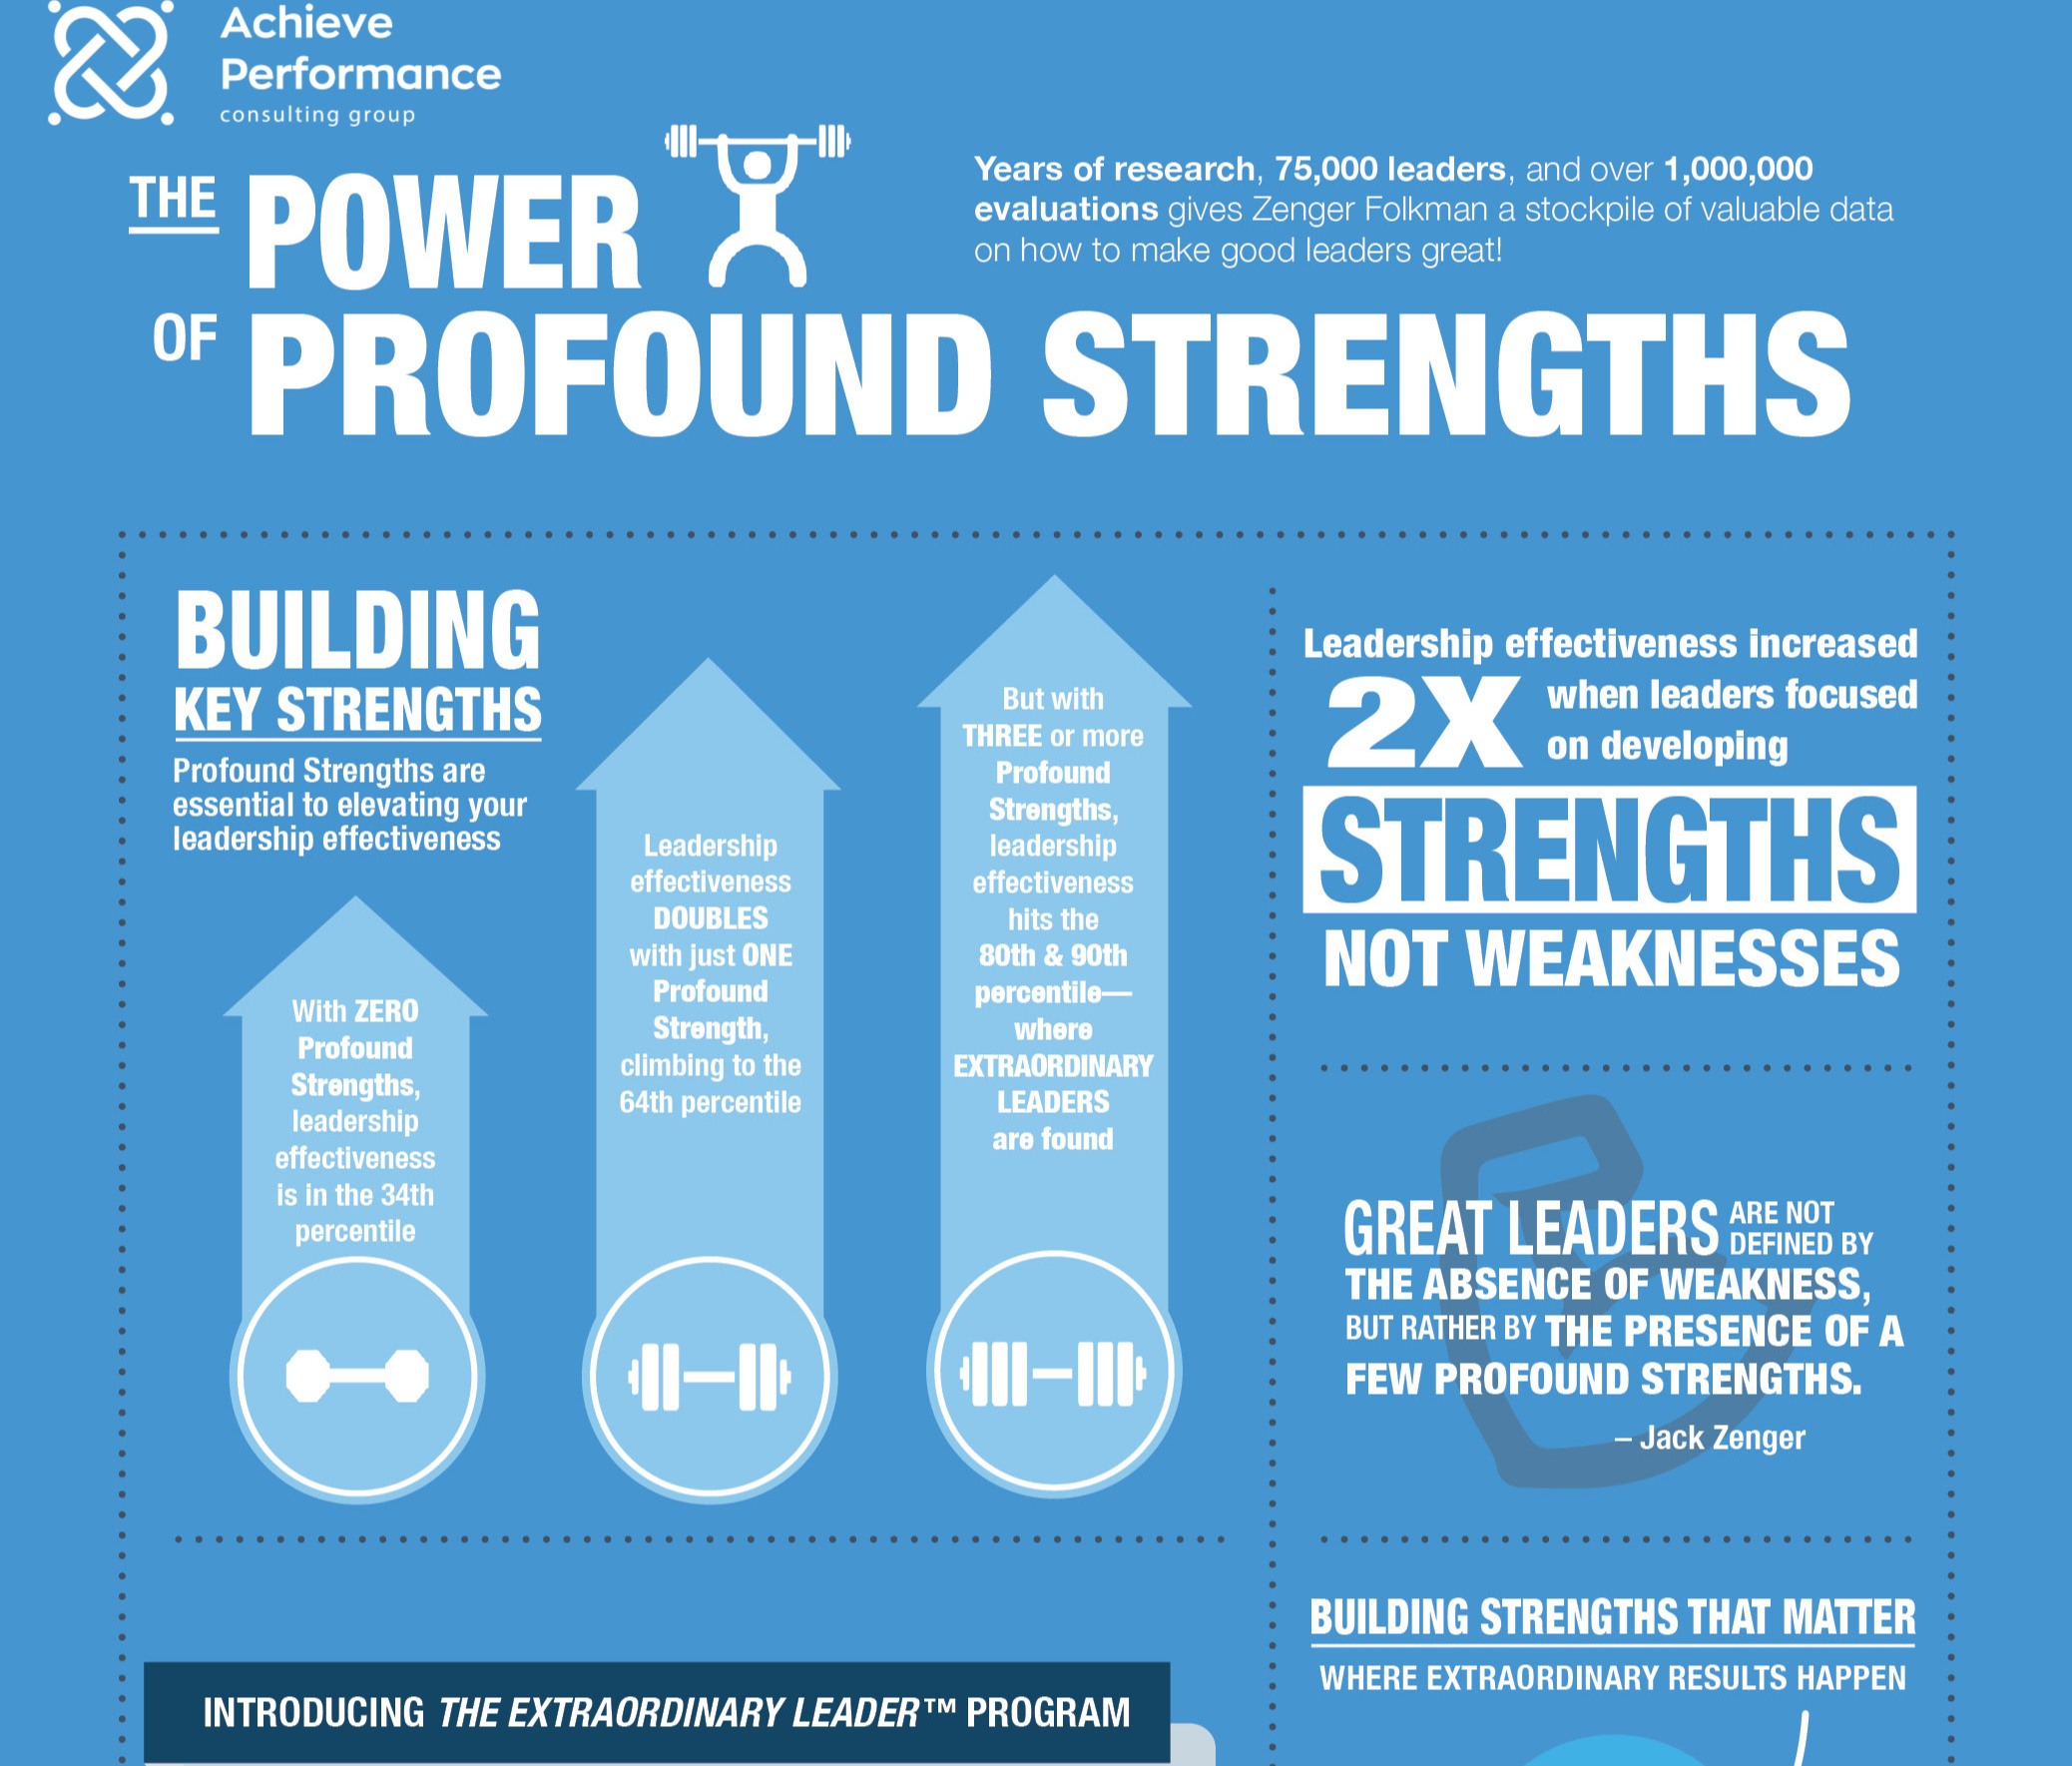 Profound-Strengths-Infographic_Icon-with-Shadow.